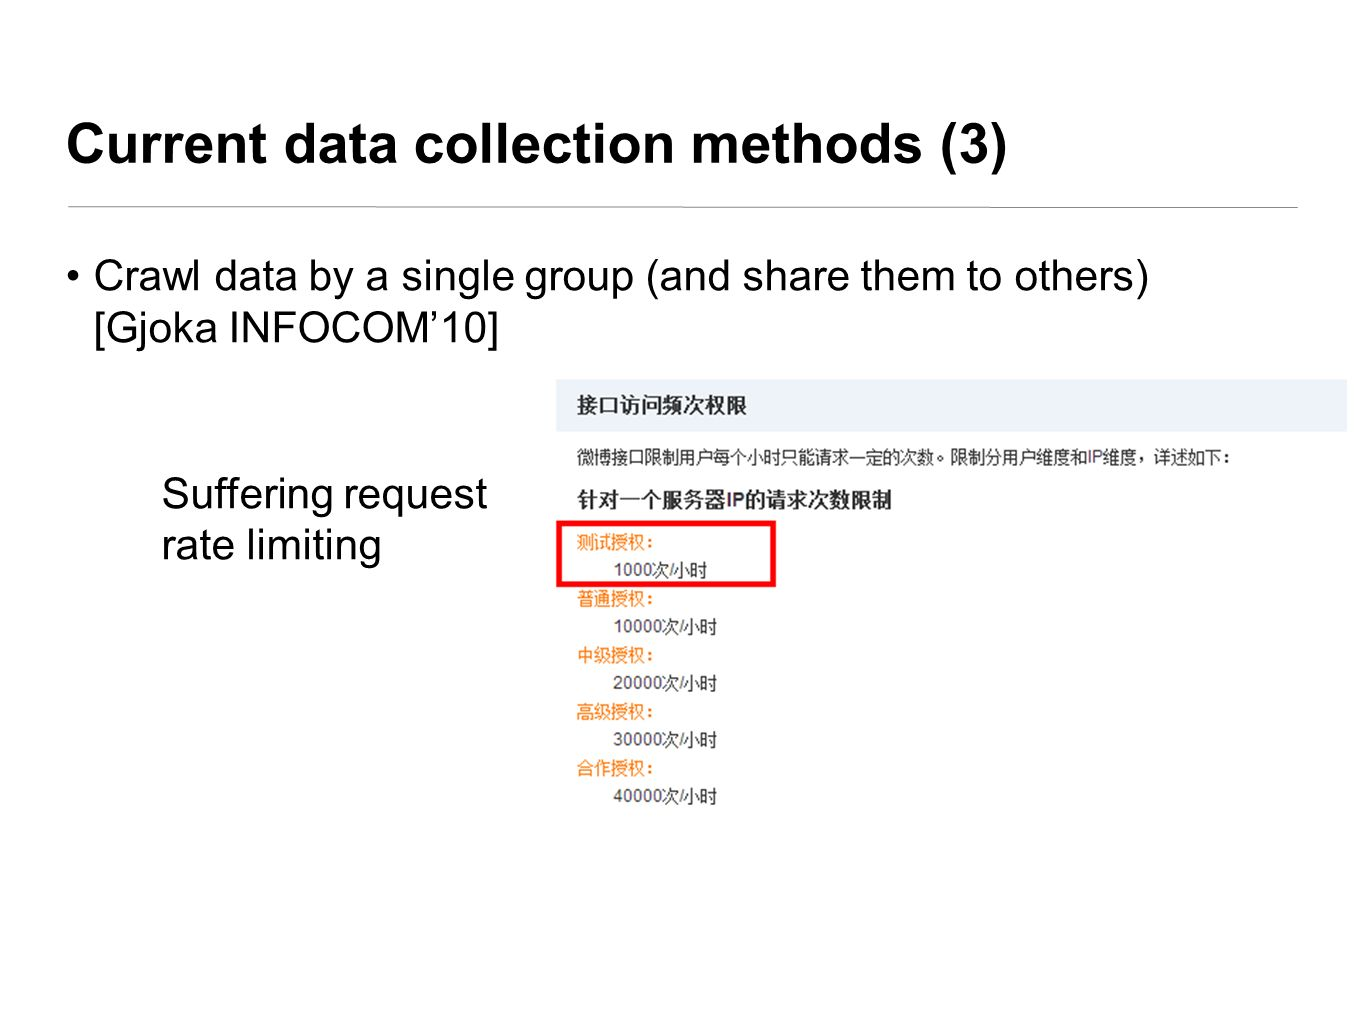 Current data collection methods (3) Crawl data by a single group (and share them to others) [Gjoka INFOCOM10] Suffering request rate limiting